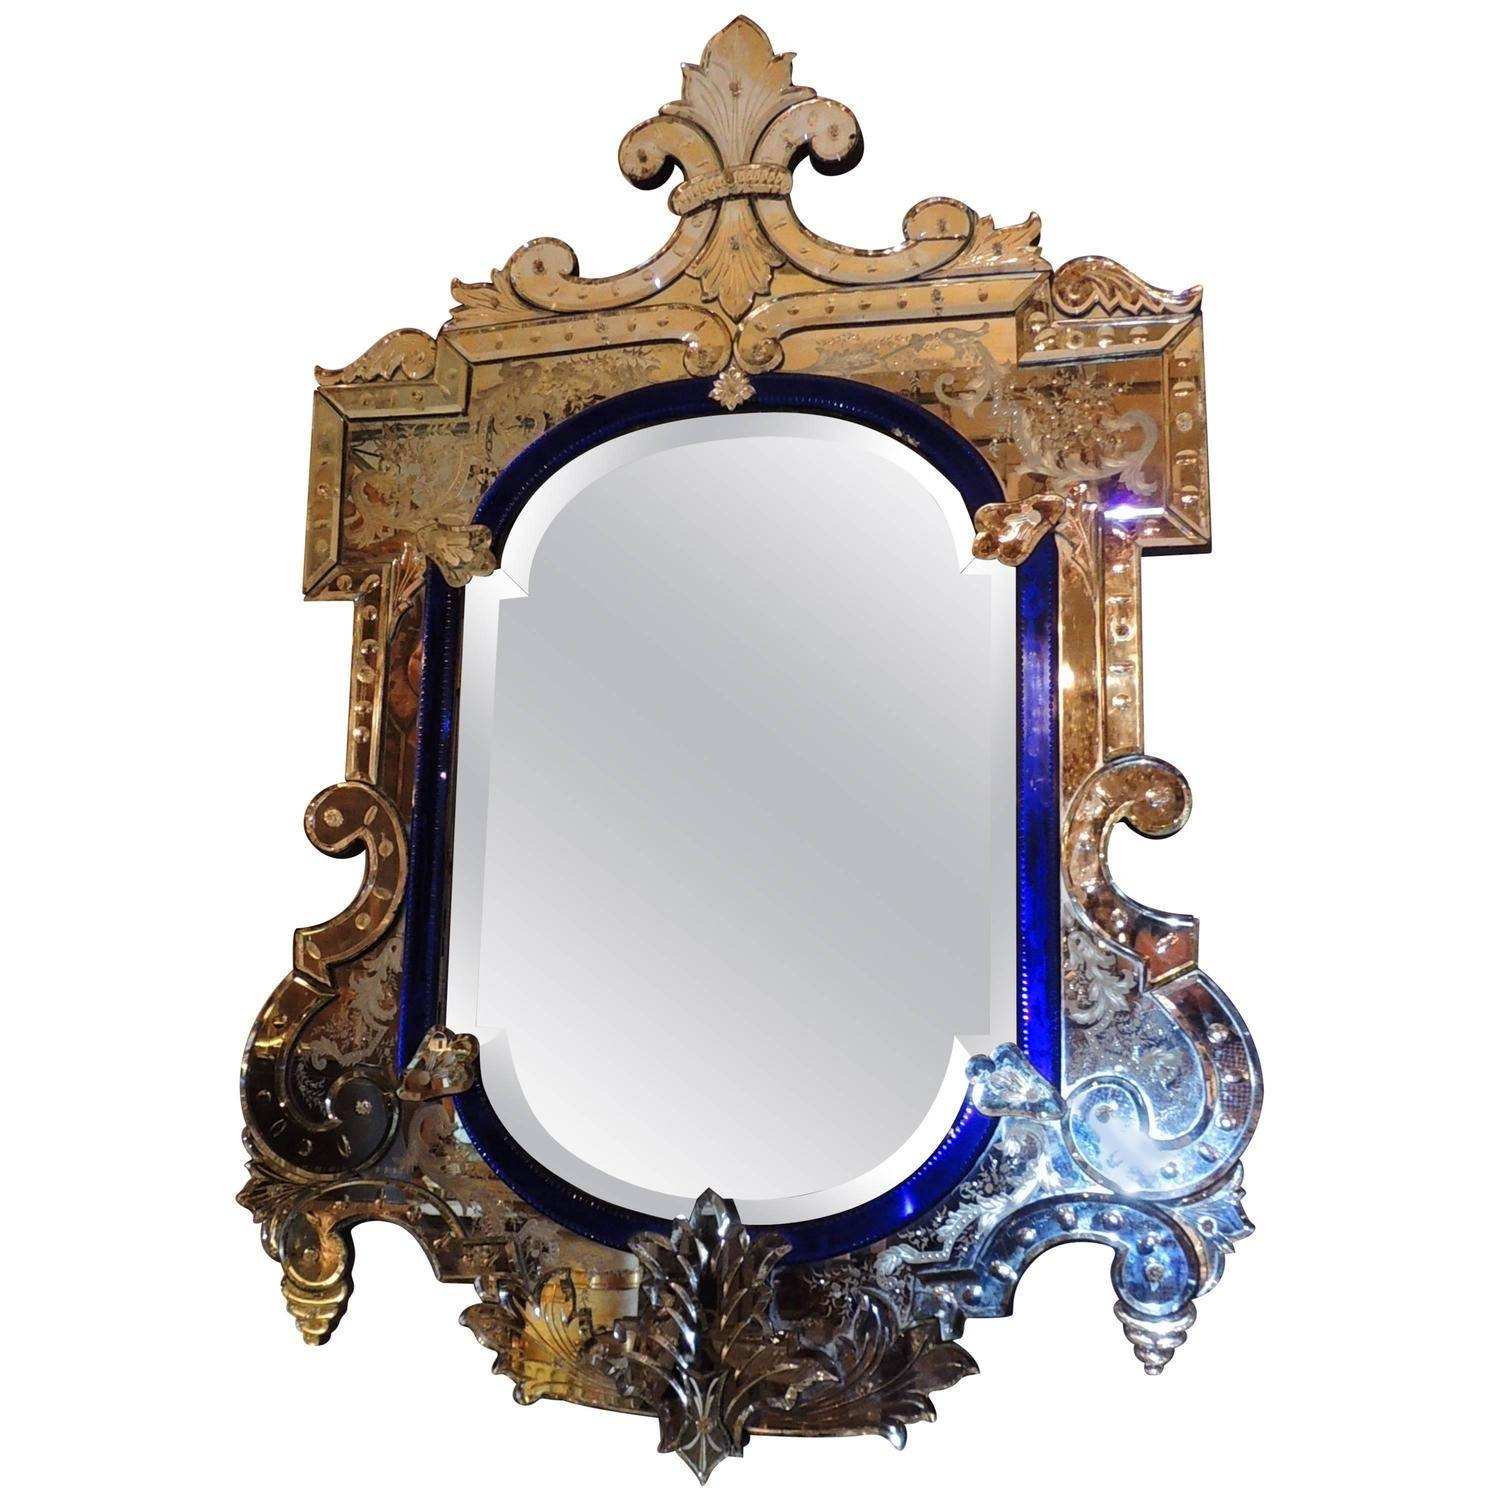 Very Fine Antique Venetian Etched-Glass Mirror In Medium Size At in Antique Venetian Mirrors (Image 24 of 25)